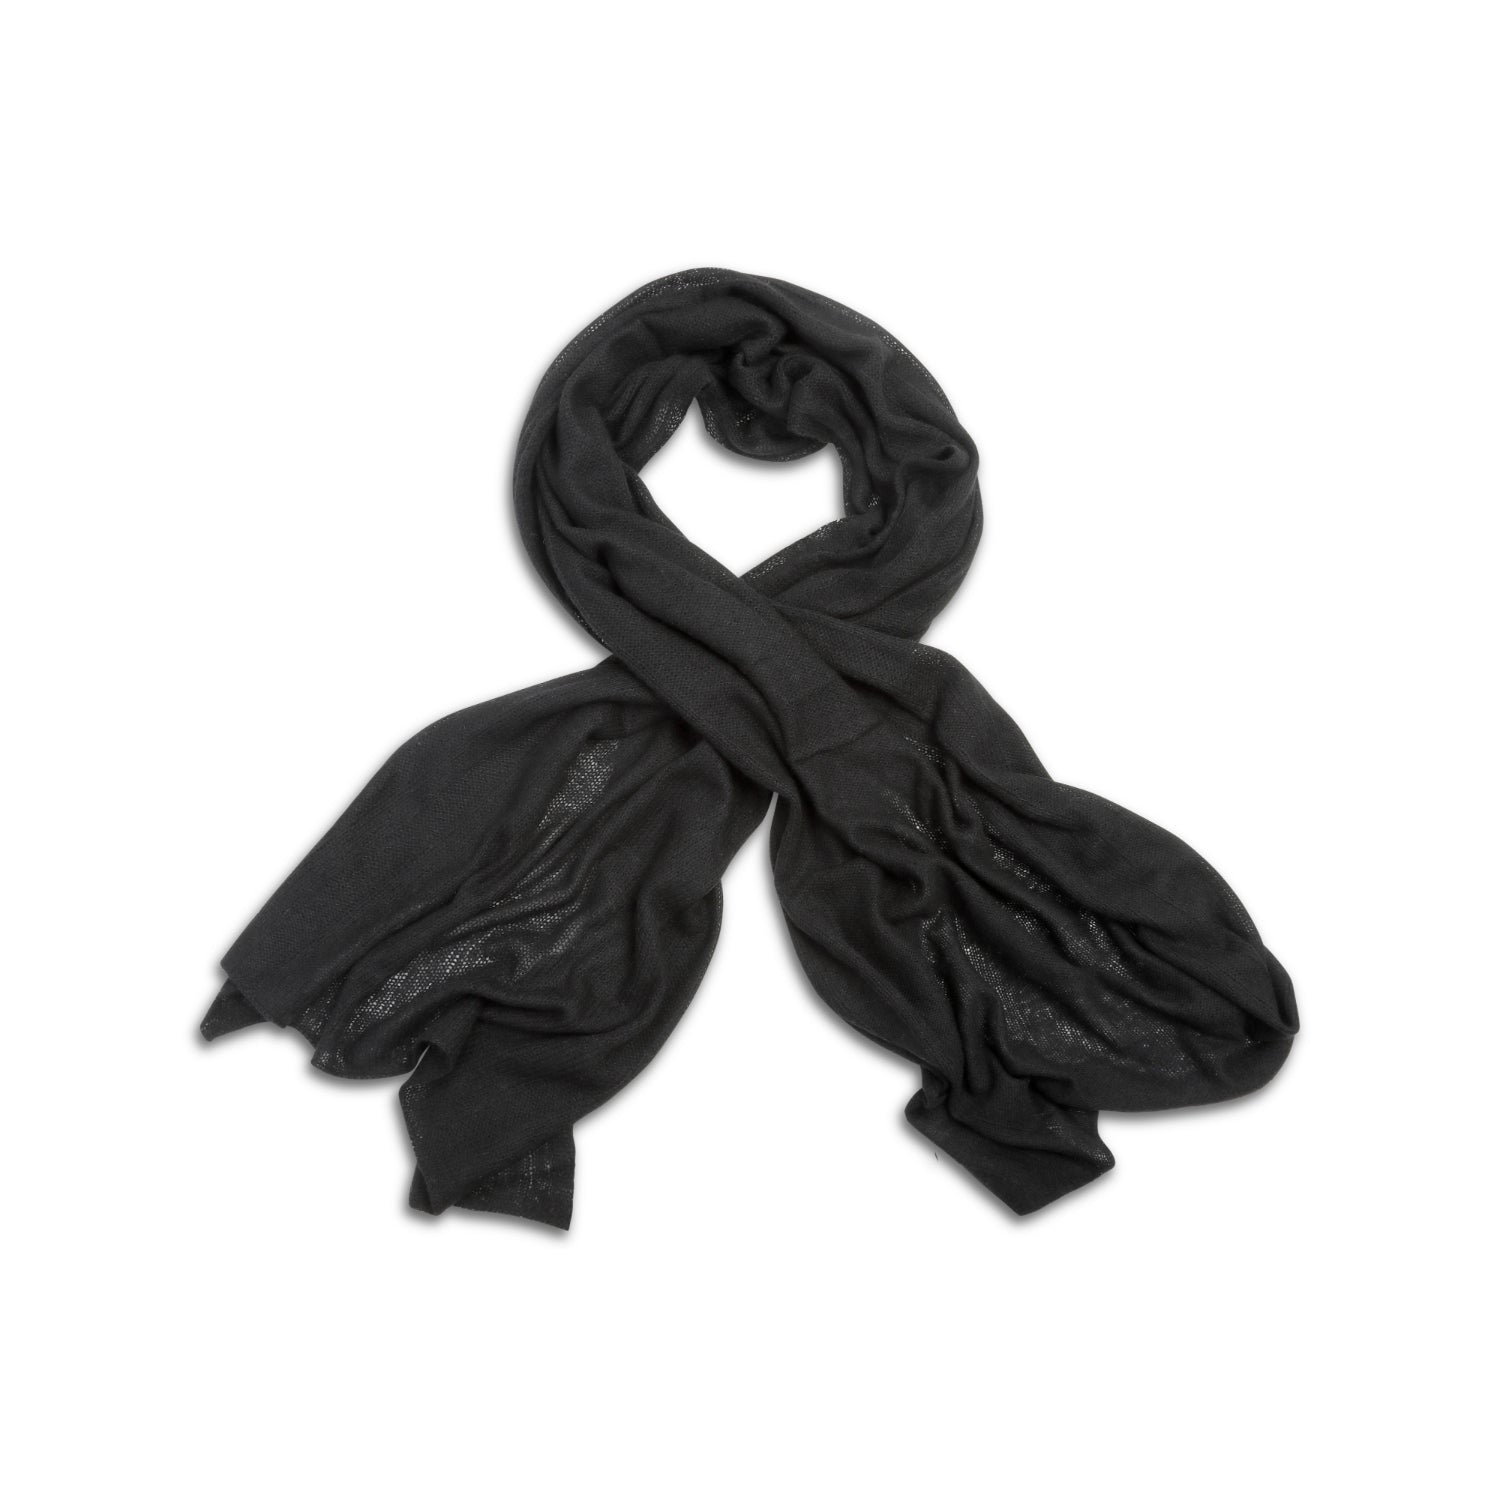 Black | Knitted Cashmere Stole | Knitted Cashmere Scarf | Shop at The Cashmere Choice | London